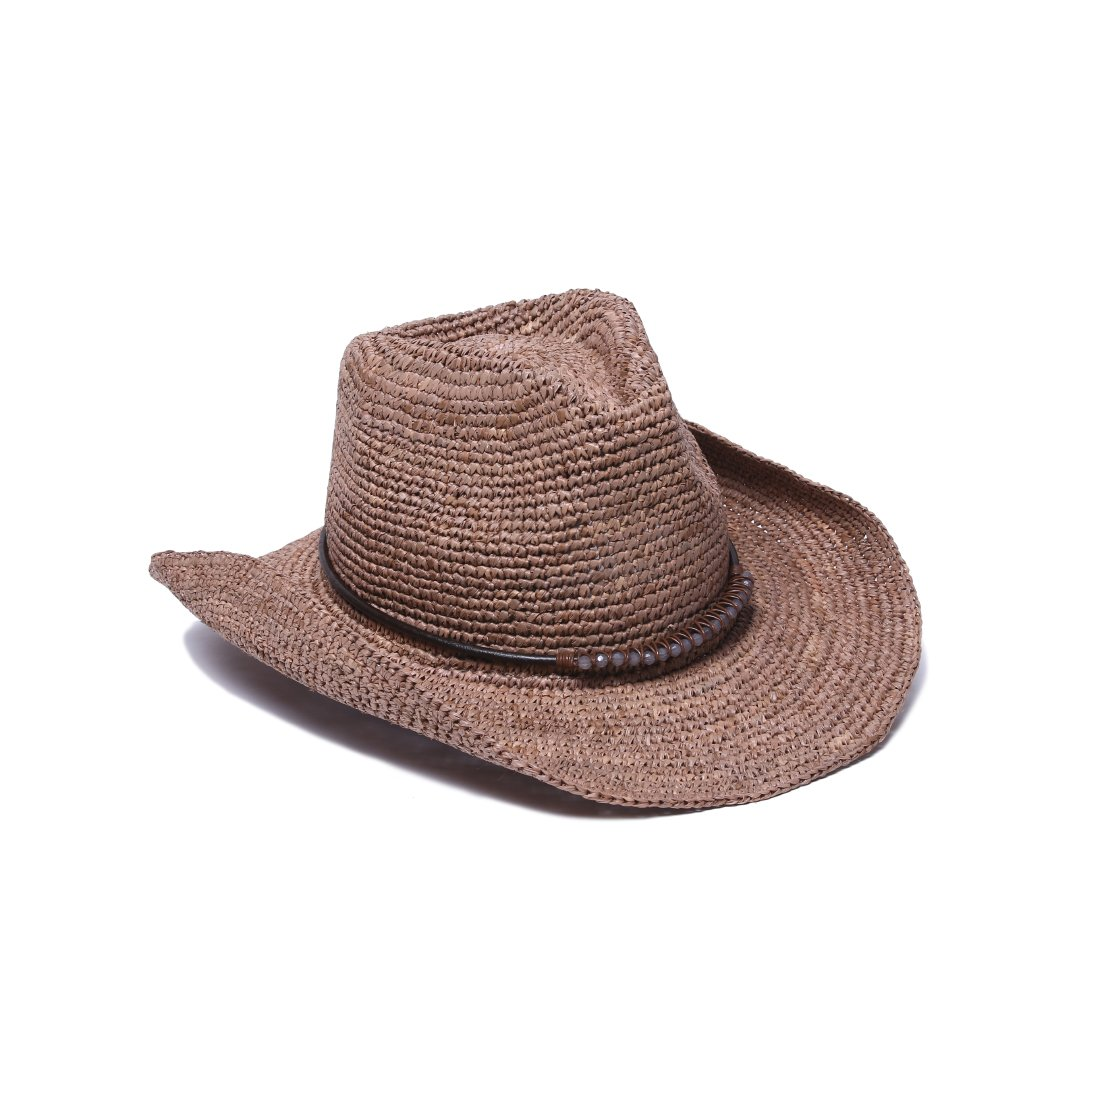 ale by Alessandra Women's Cassidy Raffia Cowboy Hat with Beaded Trim and Memory Wire Brim, Cocoa, One Size by ale by Alessandra (Image #1)